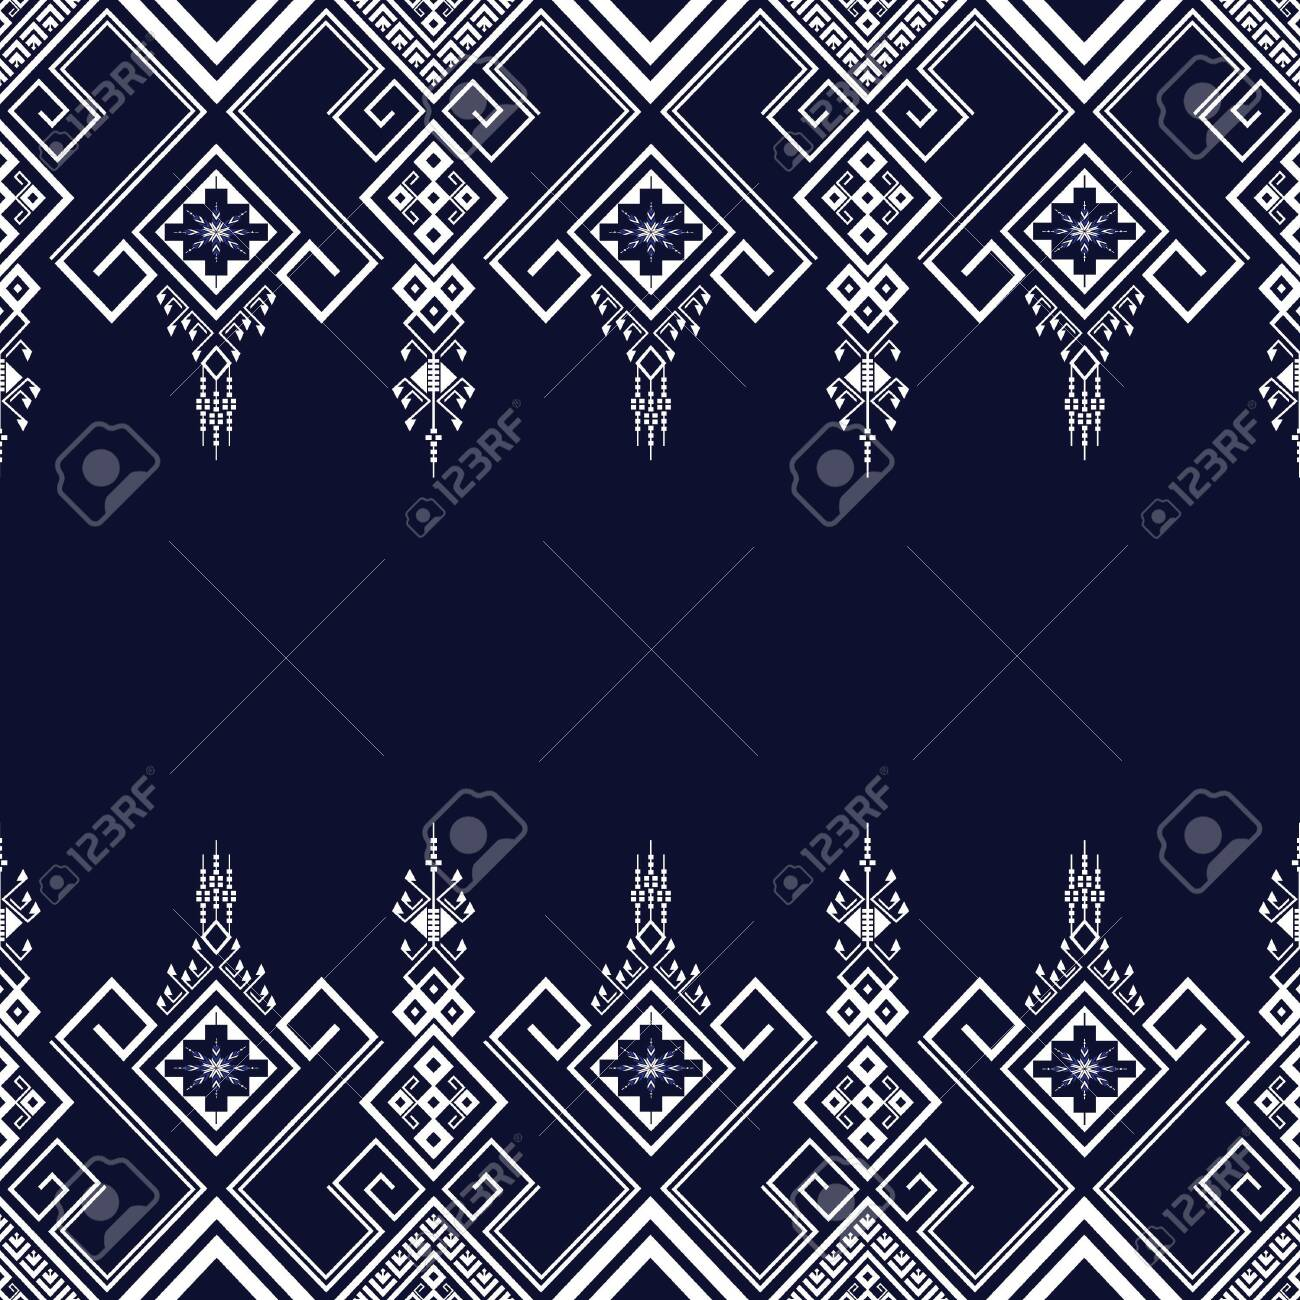 Geometric Ethnic Pattern Traditional Design For Background Carpet Wallpaper Clothing Wrapping Batik Fabric Sarong Vector Royalty Free Cliparts Vectors And Stock Illustration Image 127591618